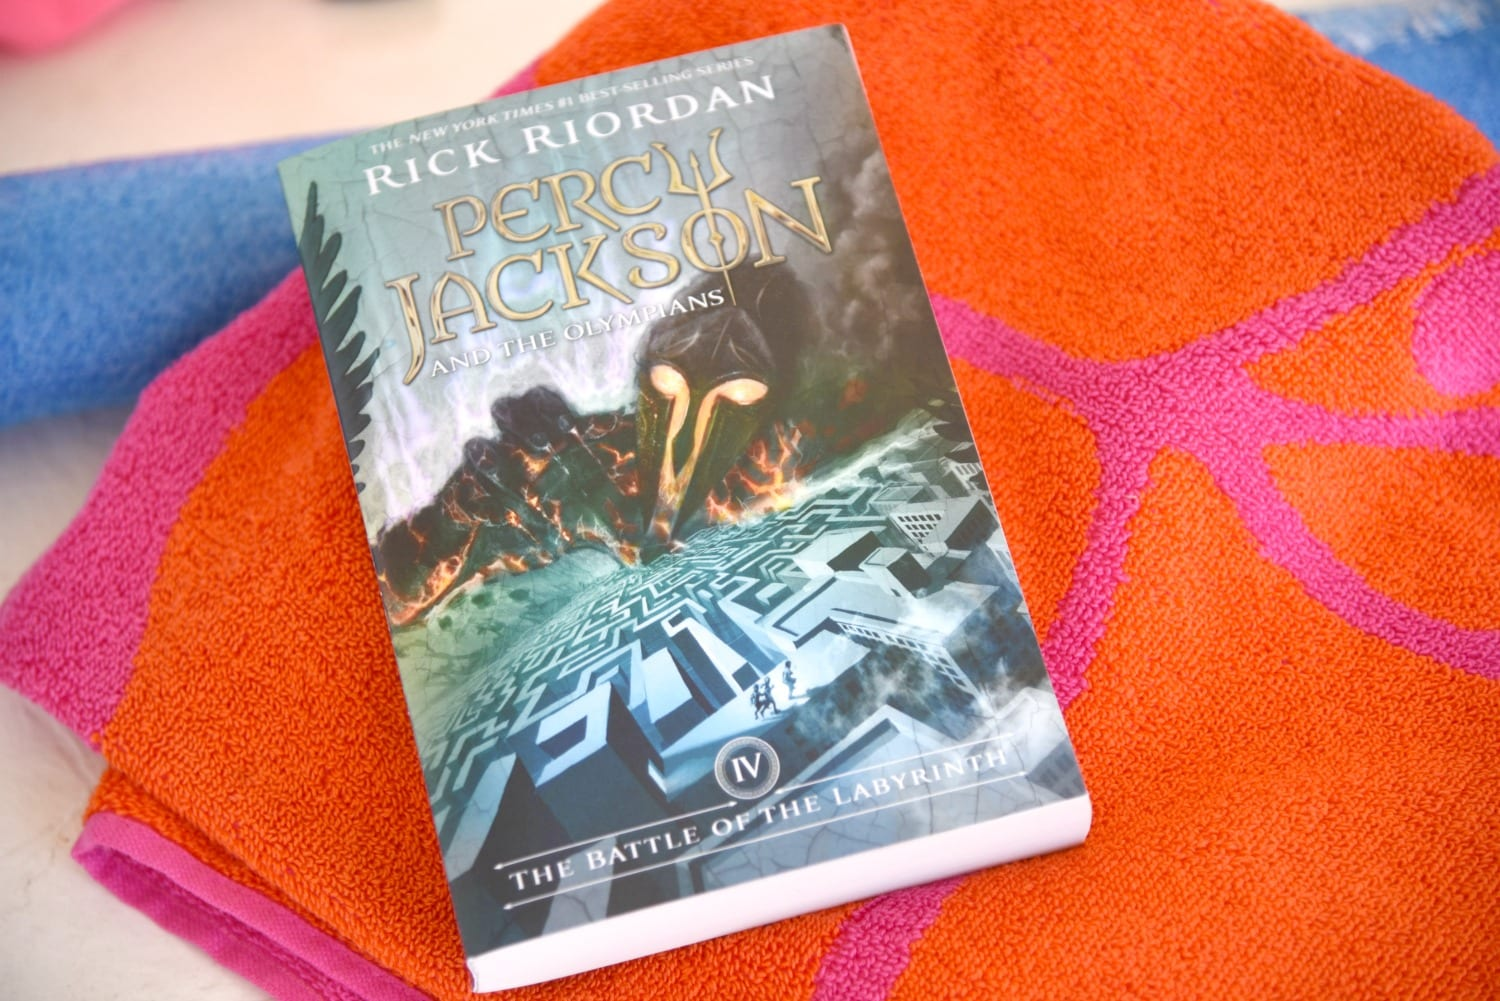 Percy Jackson the battle of the labyrinth